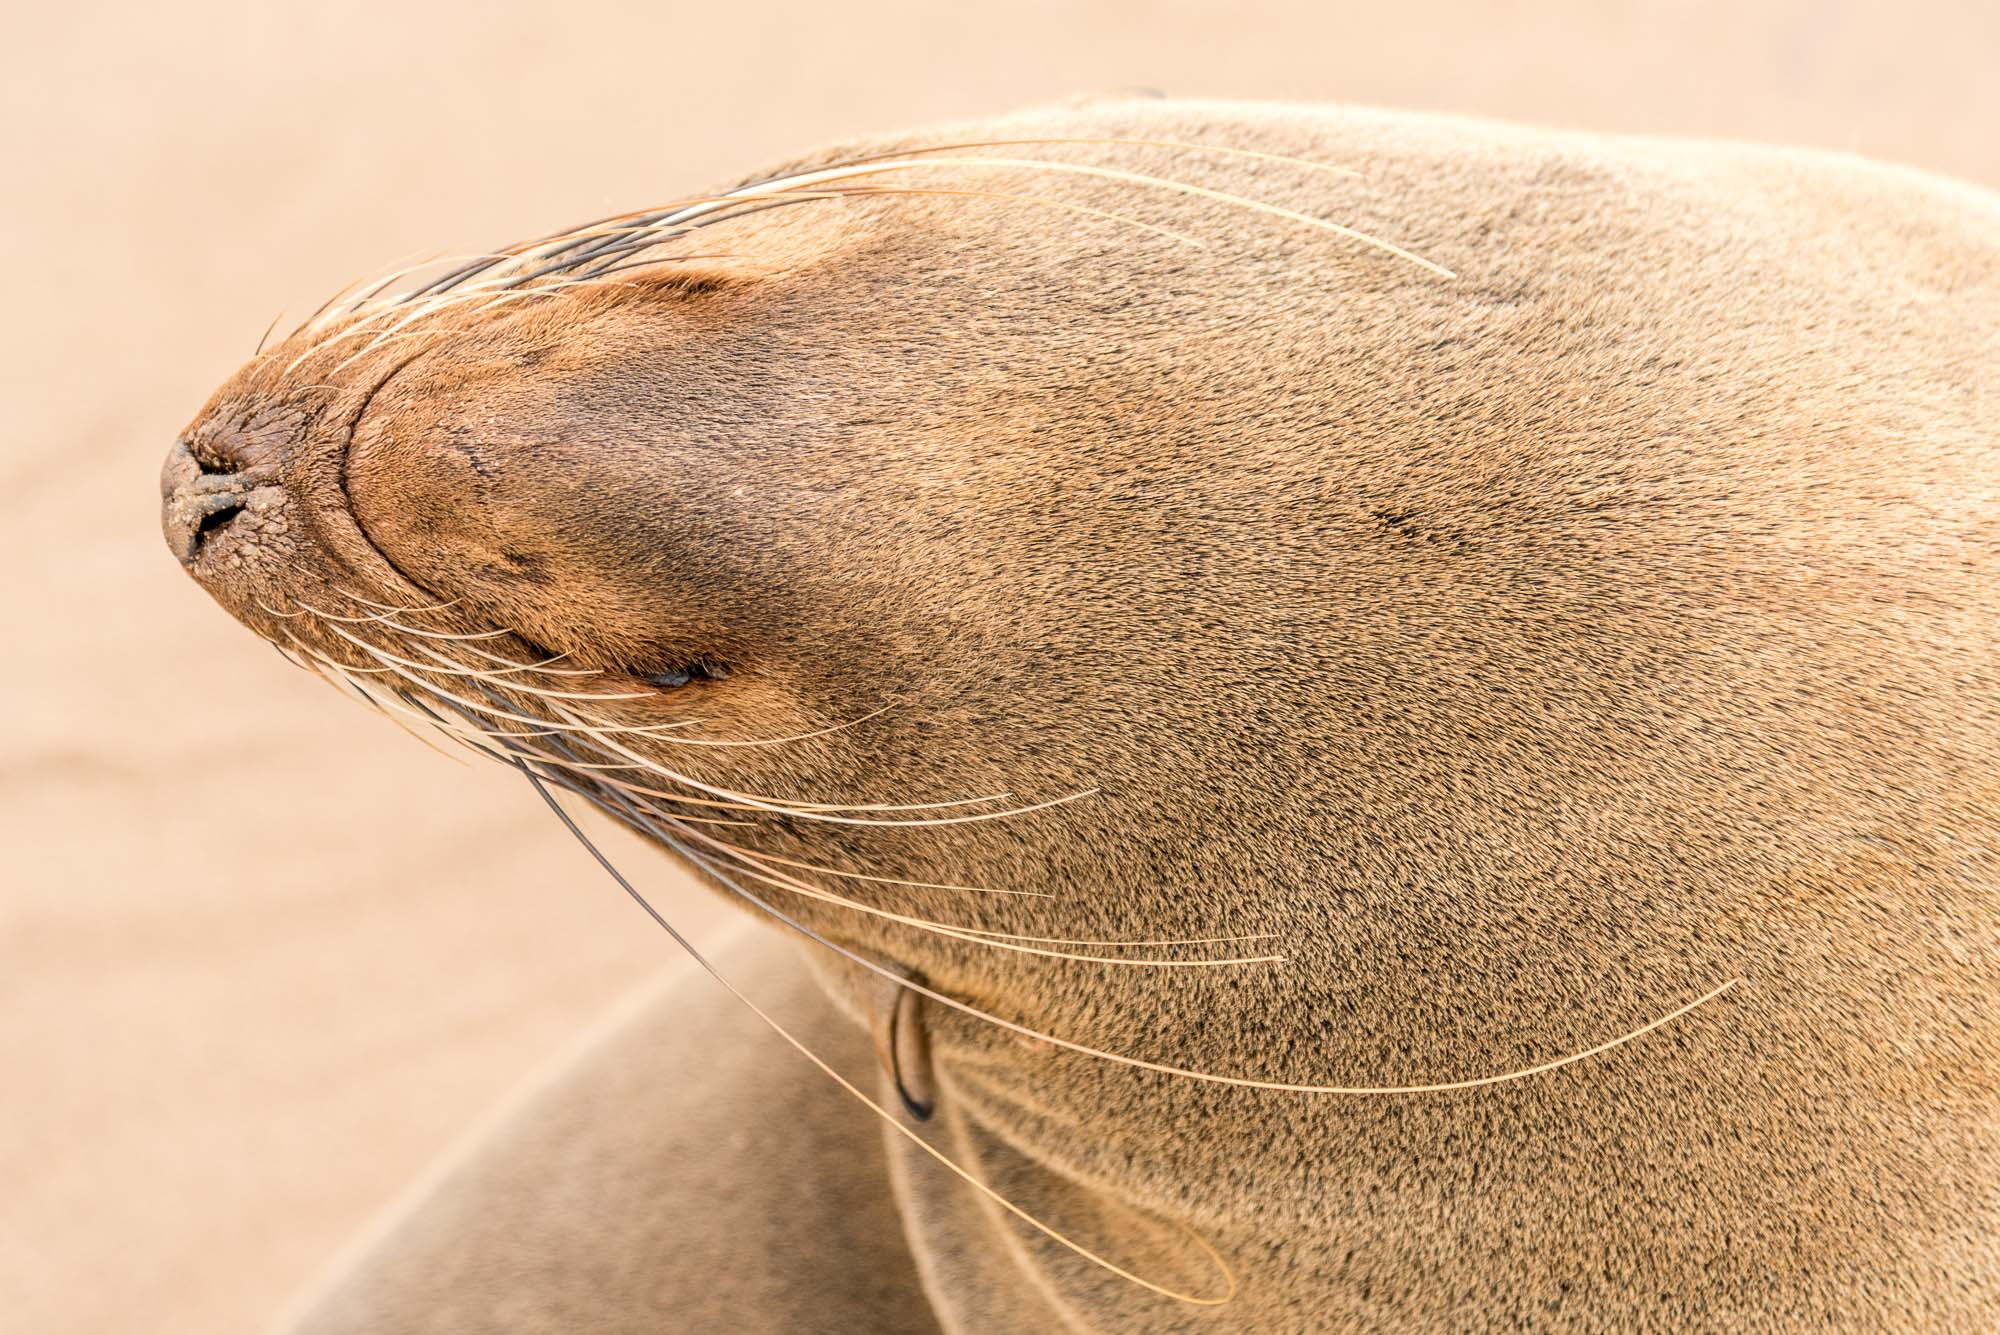 cape cross seal close up namibia